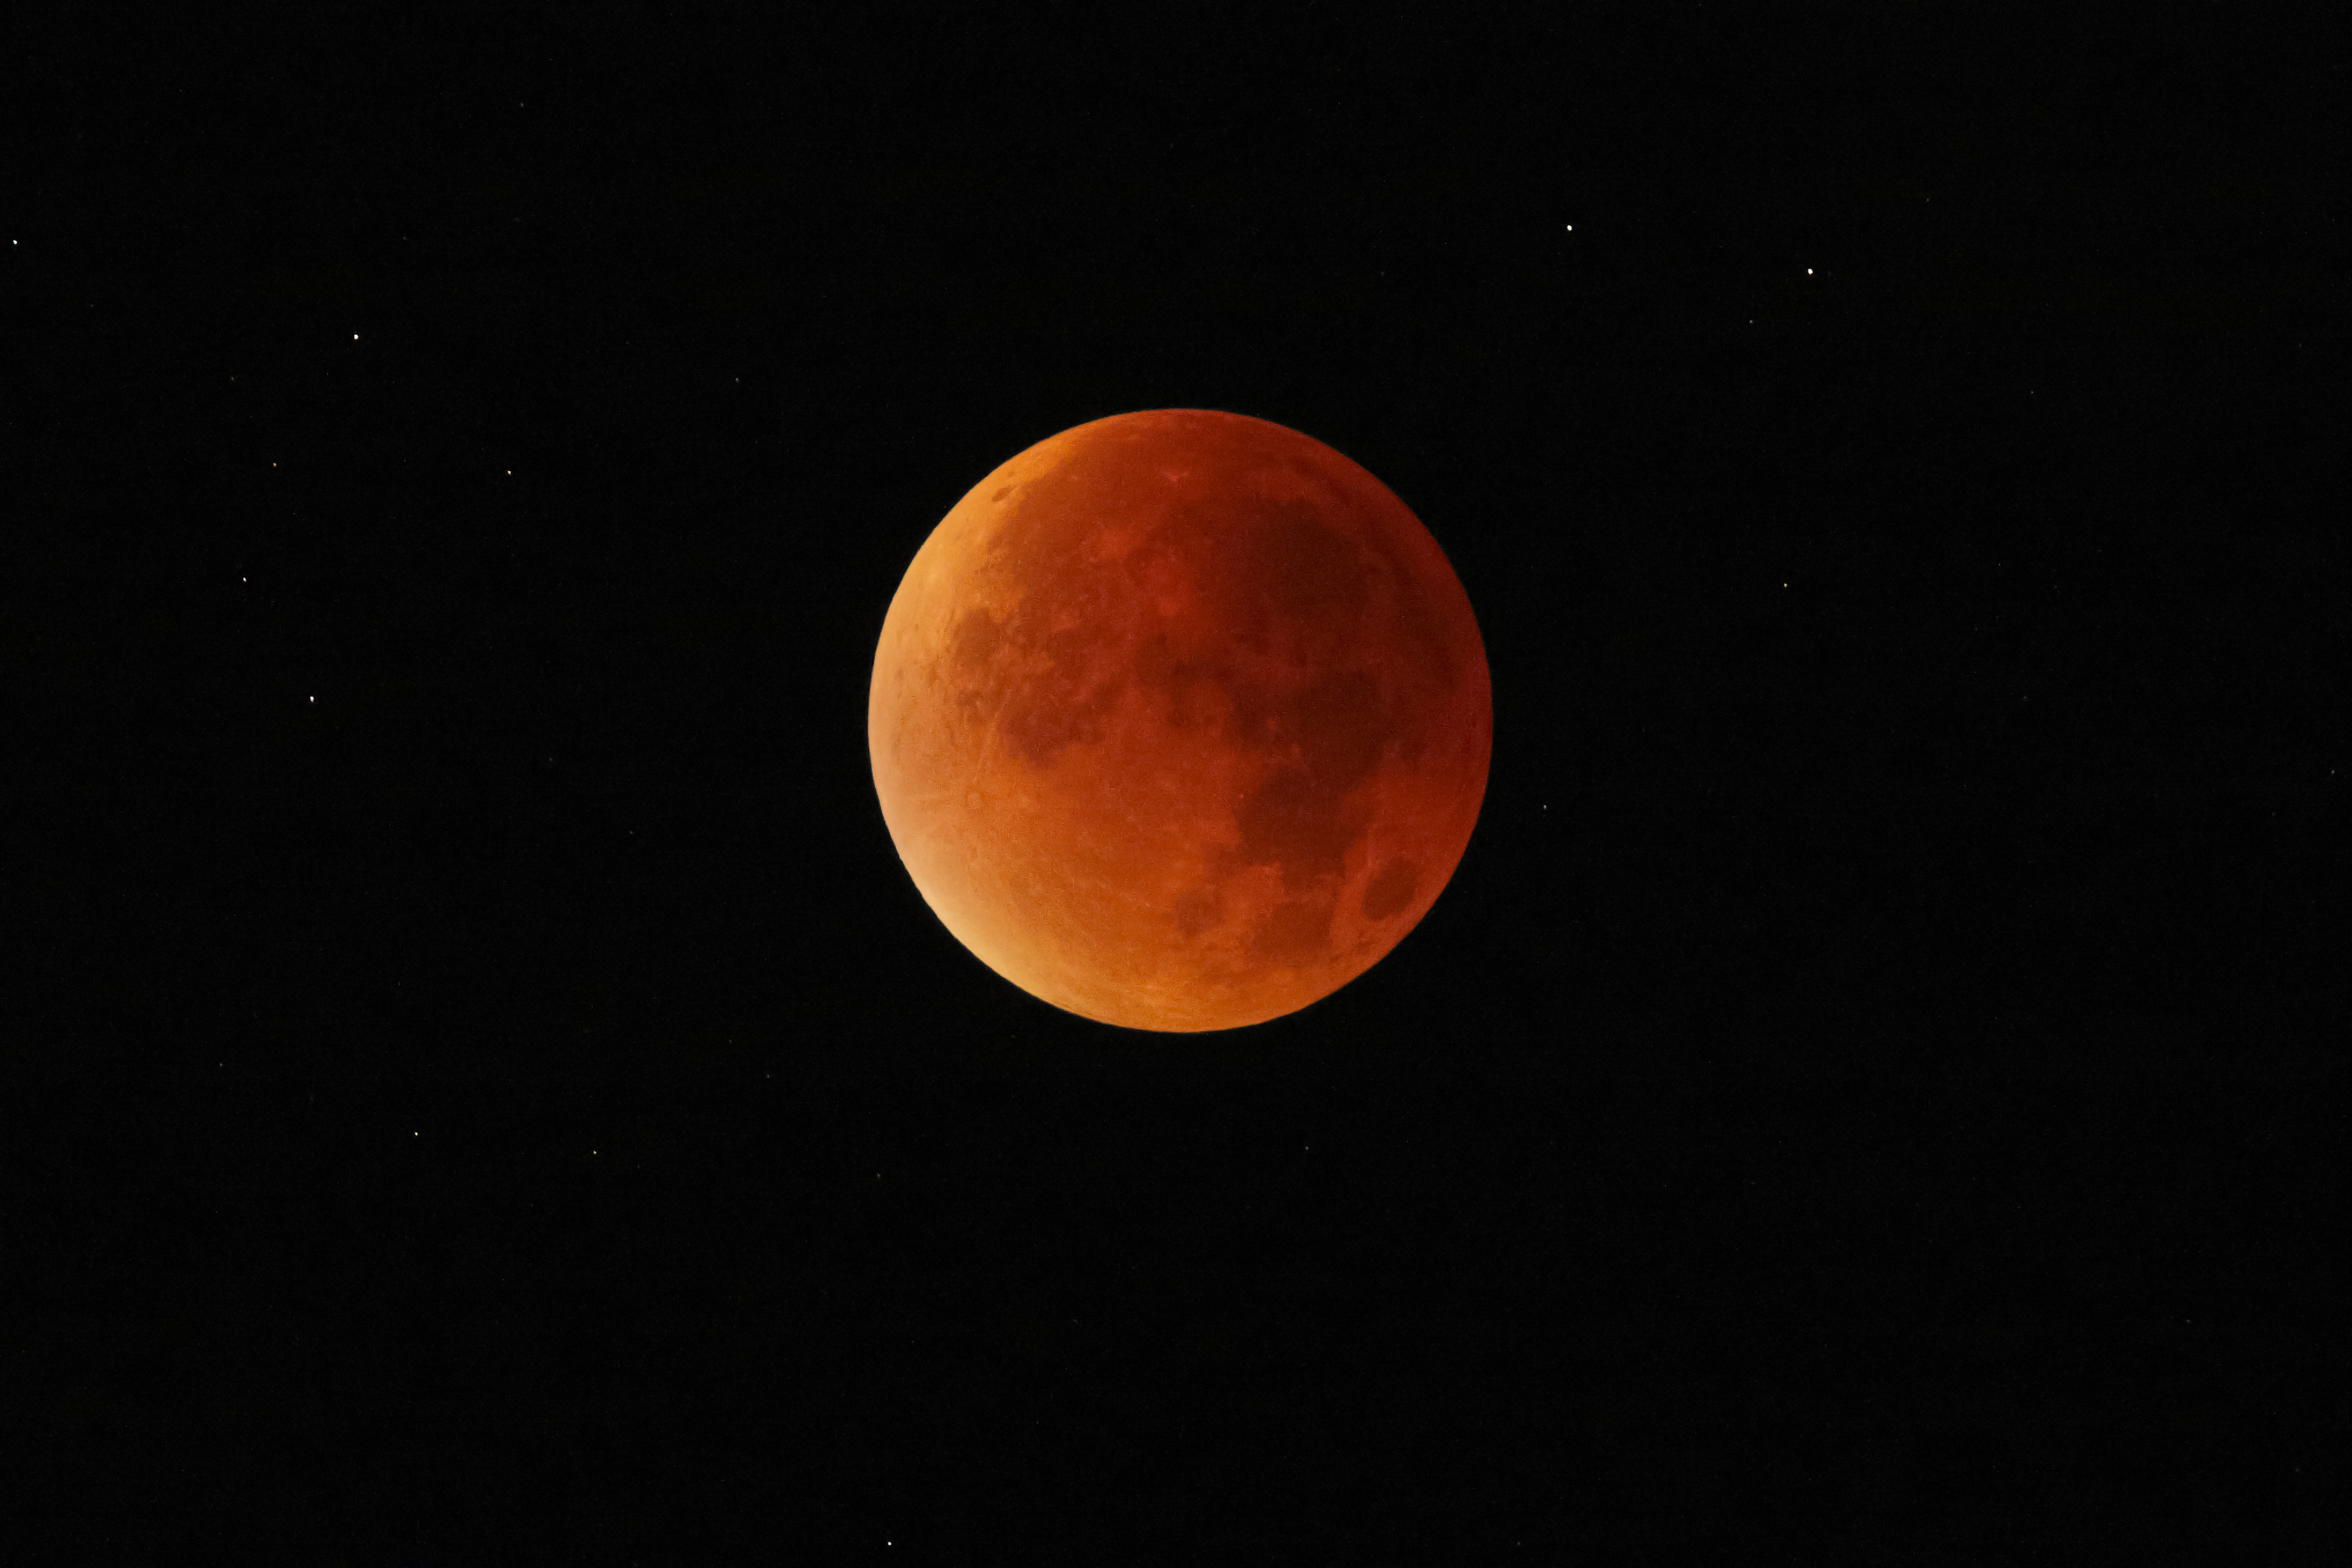 A lunar eclipse is coming. Here's how to watch the moon turn blood red in the sky.